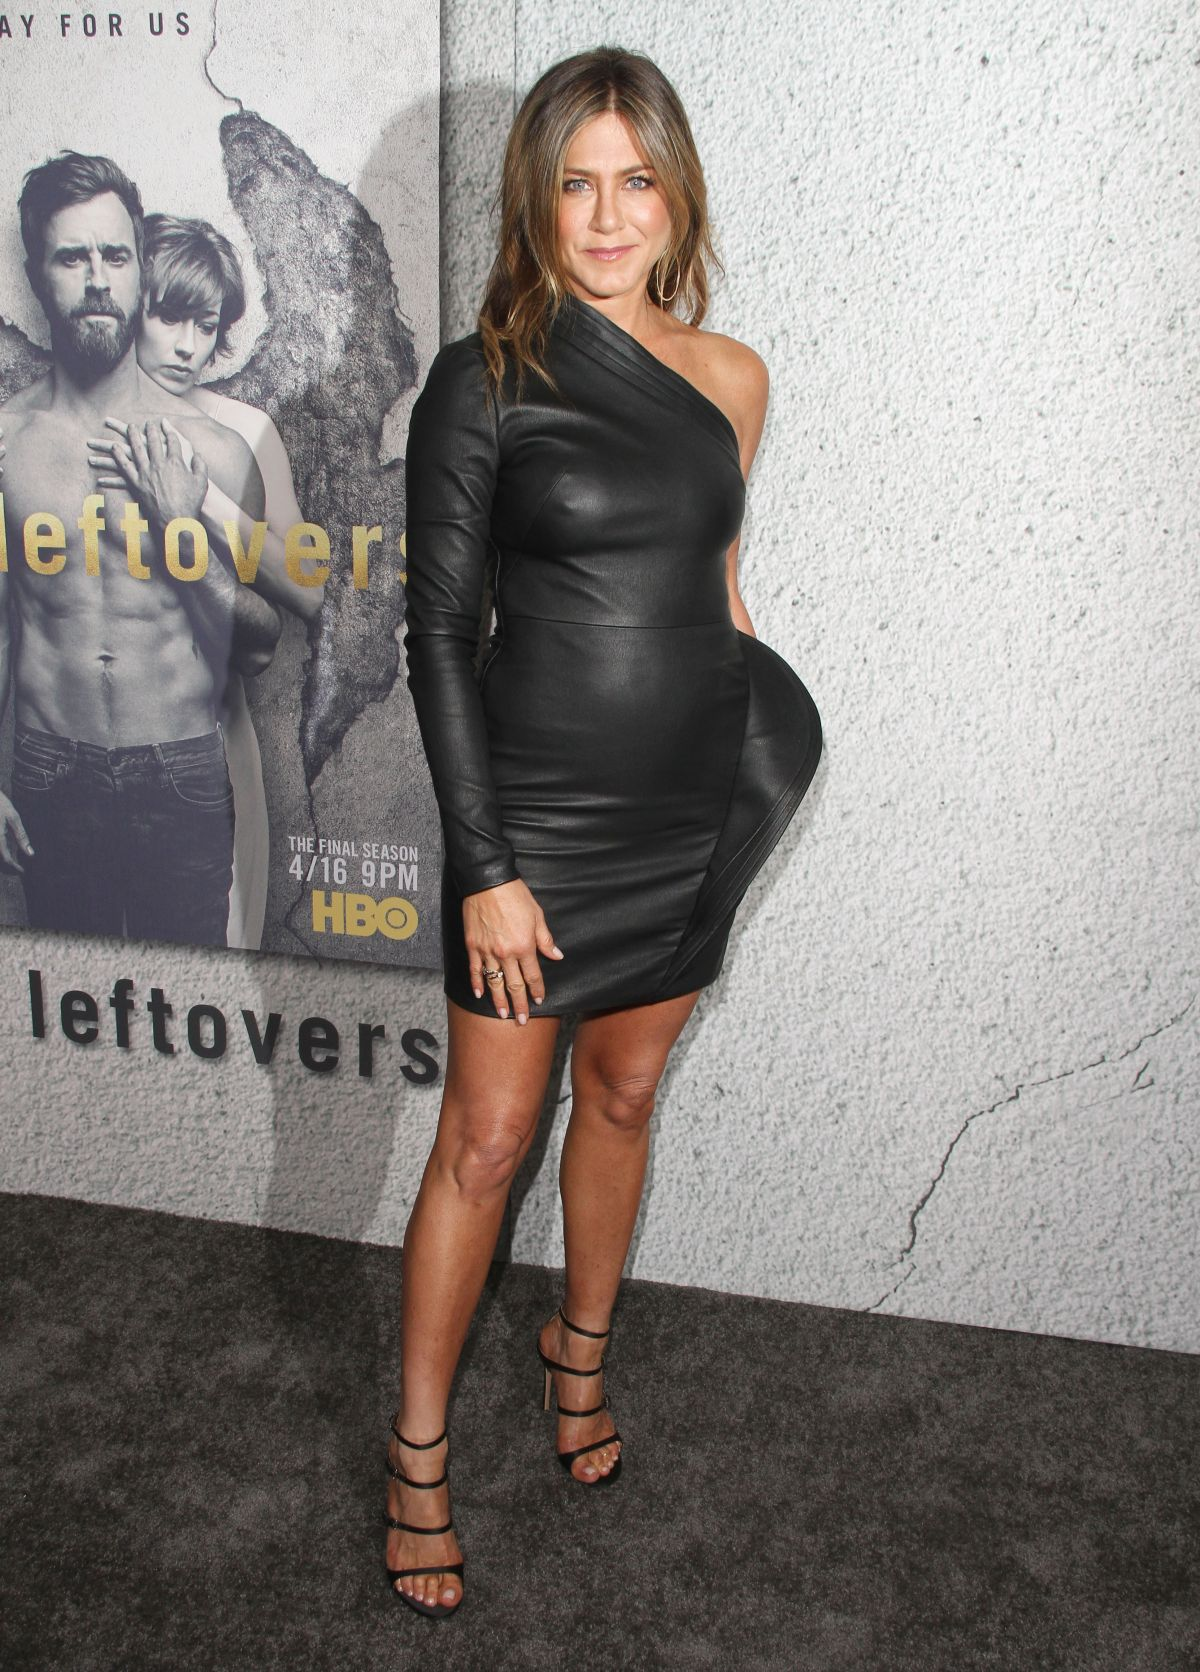 jennifer-aniston-at-the-premiere-of-hbo-